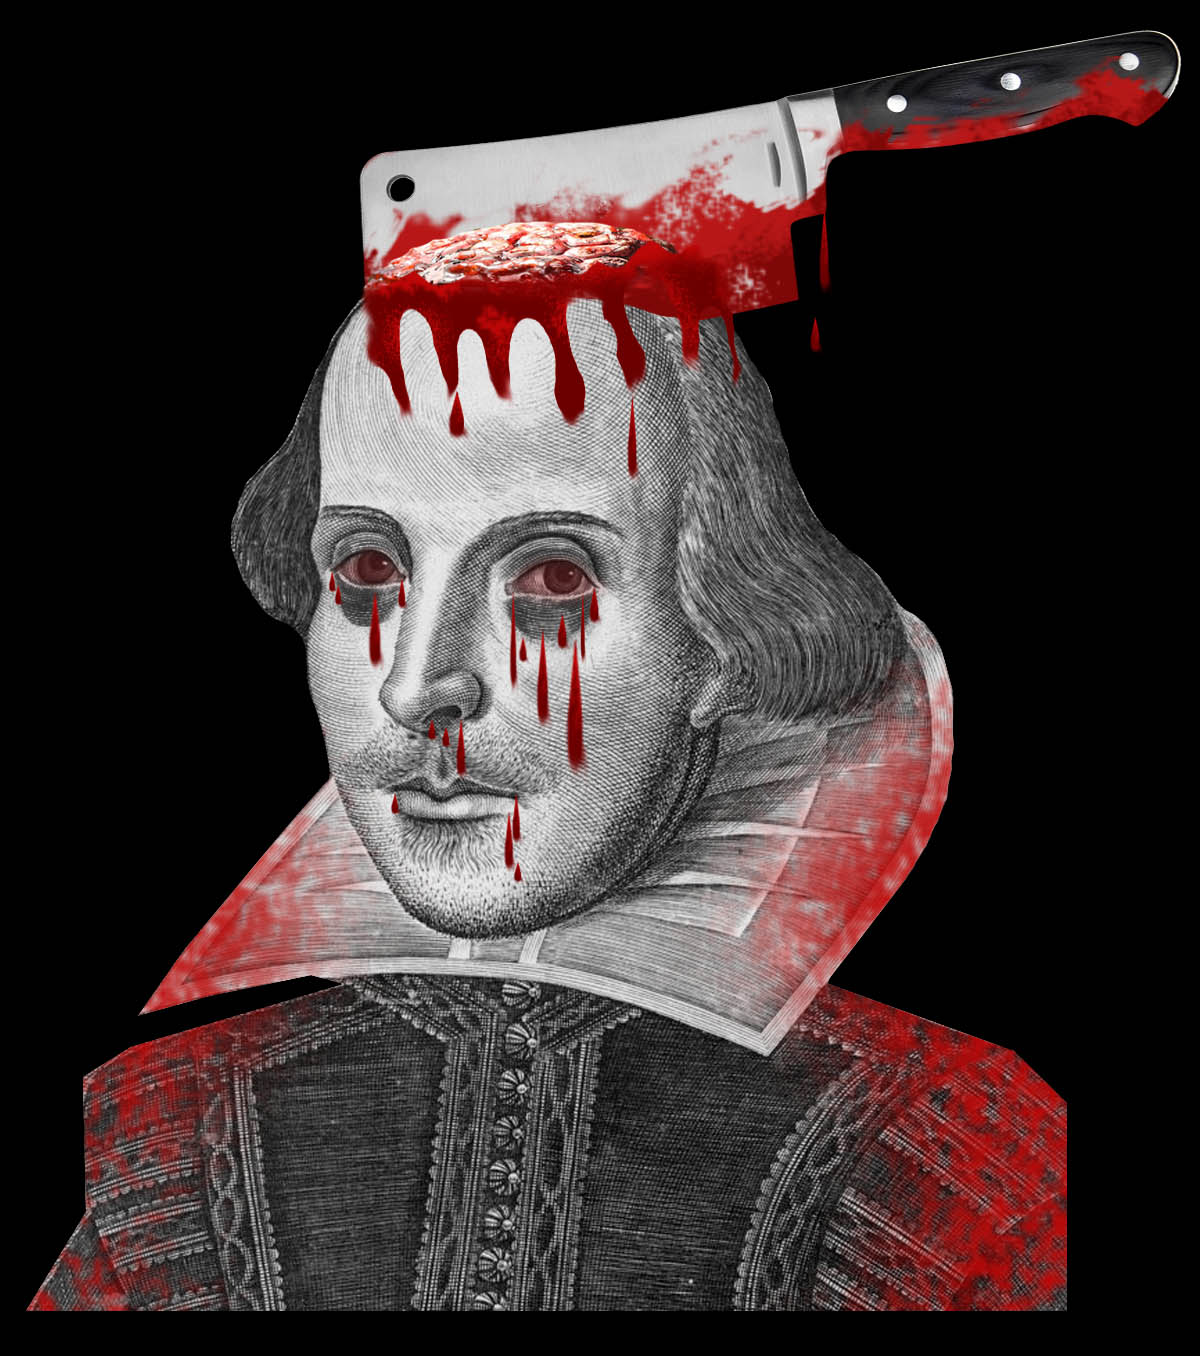 Titus Andronicus - Staged ReadingSeptember 16, 2018